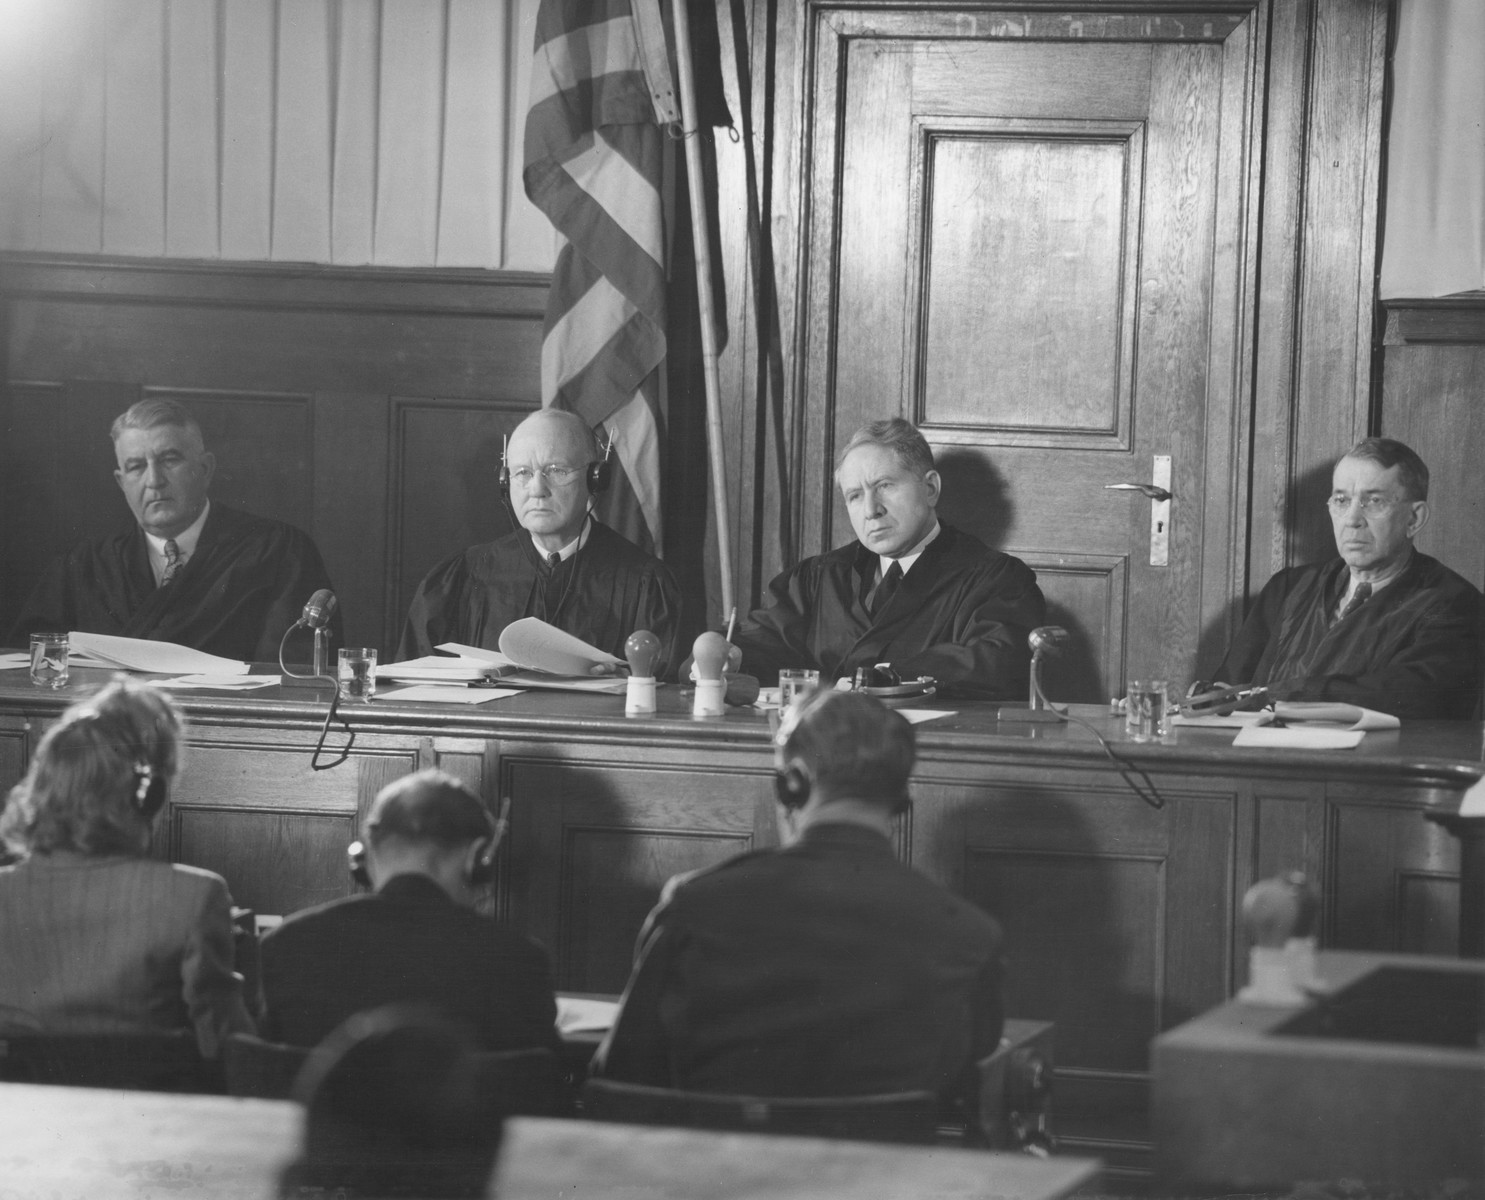 The judges of Military Tribunal II at a session of the Milch Trial.    Pictured from left to right are F. Donald Phillips, Robert M. Toms, Michael A. Musmanno, and John J. Speight.